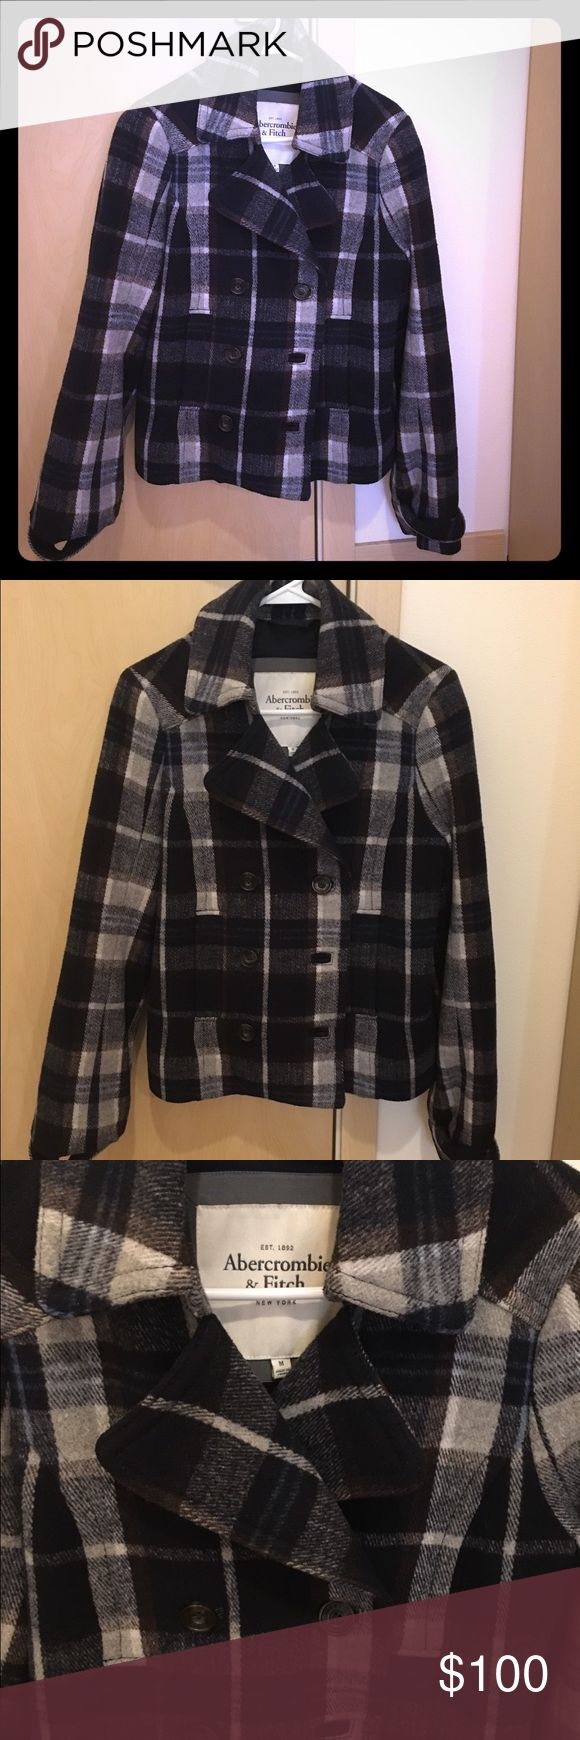 Abercrombie and Fitch Plaid Pea coat EUC Abercrombie and Fitch plaid pea coat. Buttons close. super silky interior and two pockets in the front that snap close. Such a cute jacket and there are no stains, rips or flaws at all. It is in fantastic condition! Size M Abercrombie & Fitch Jackets & Coats Pea Coats